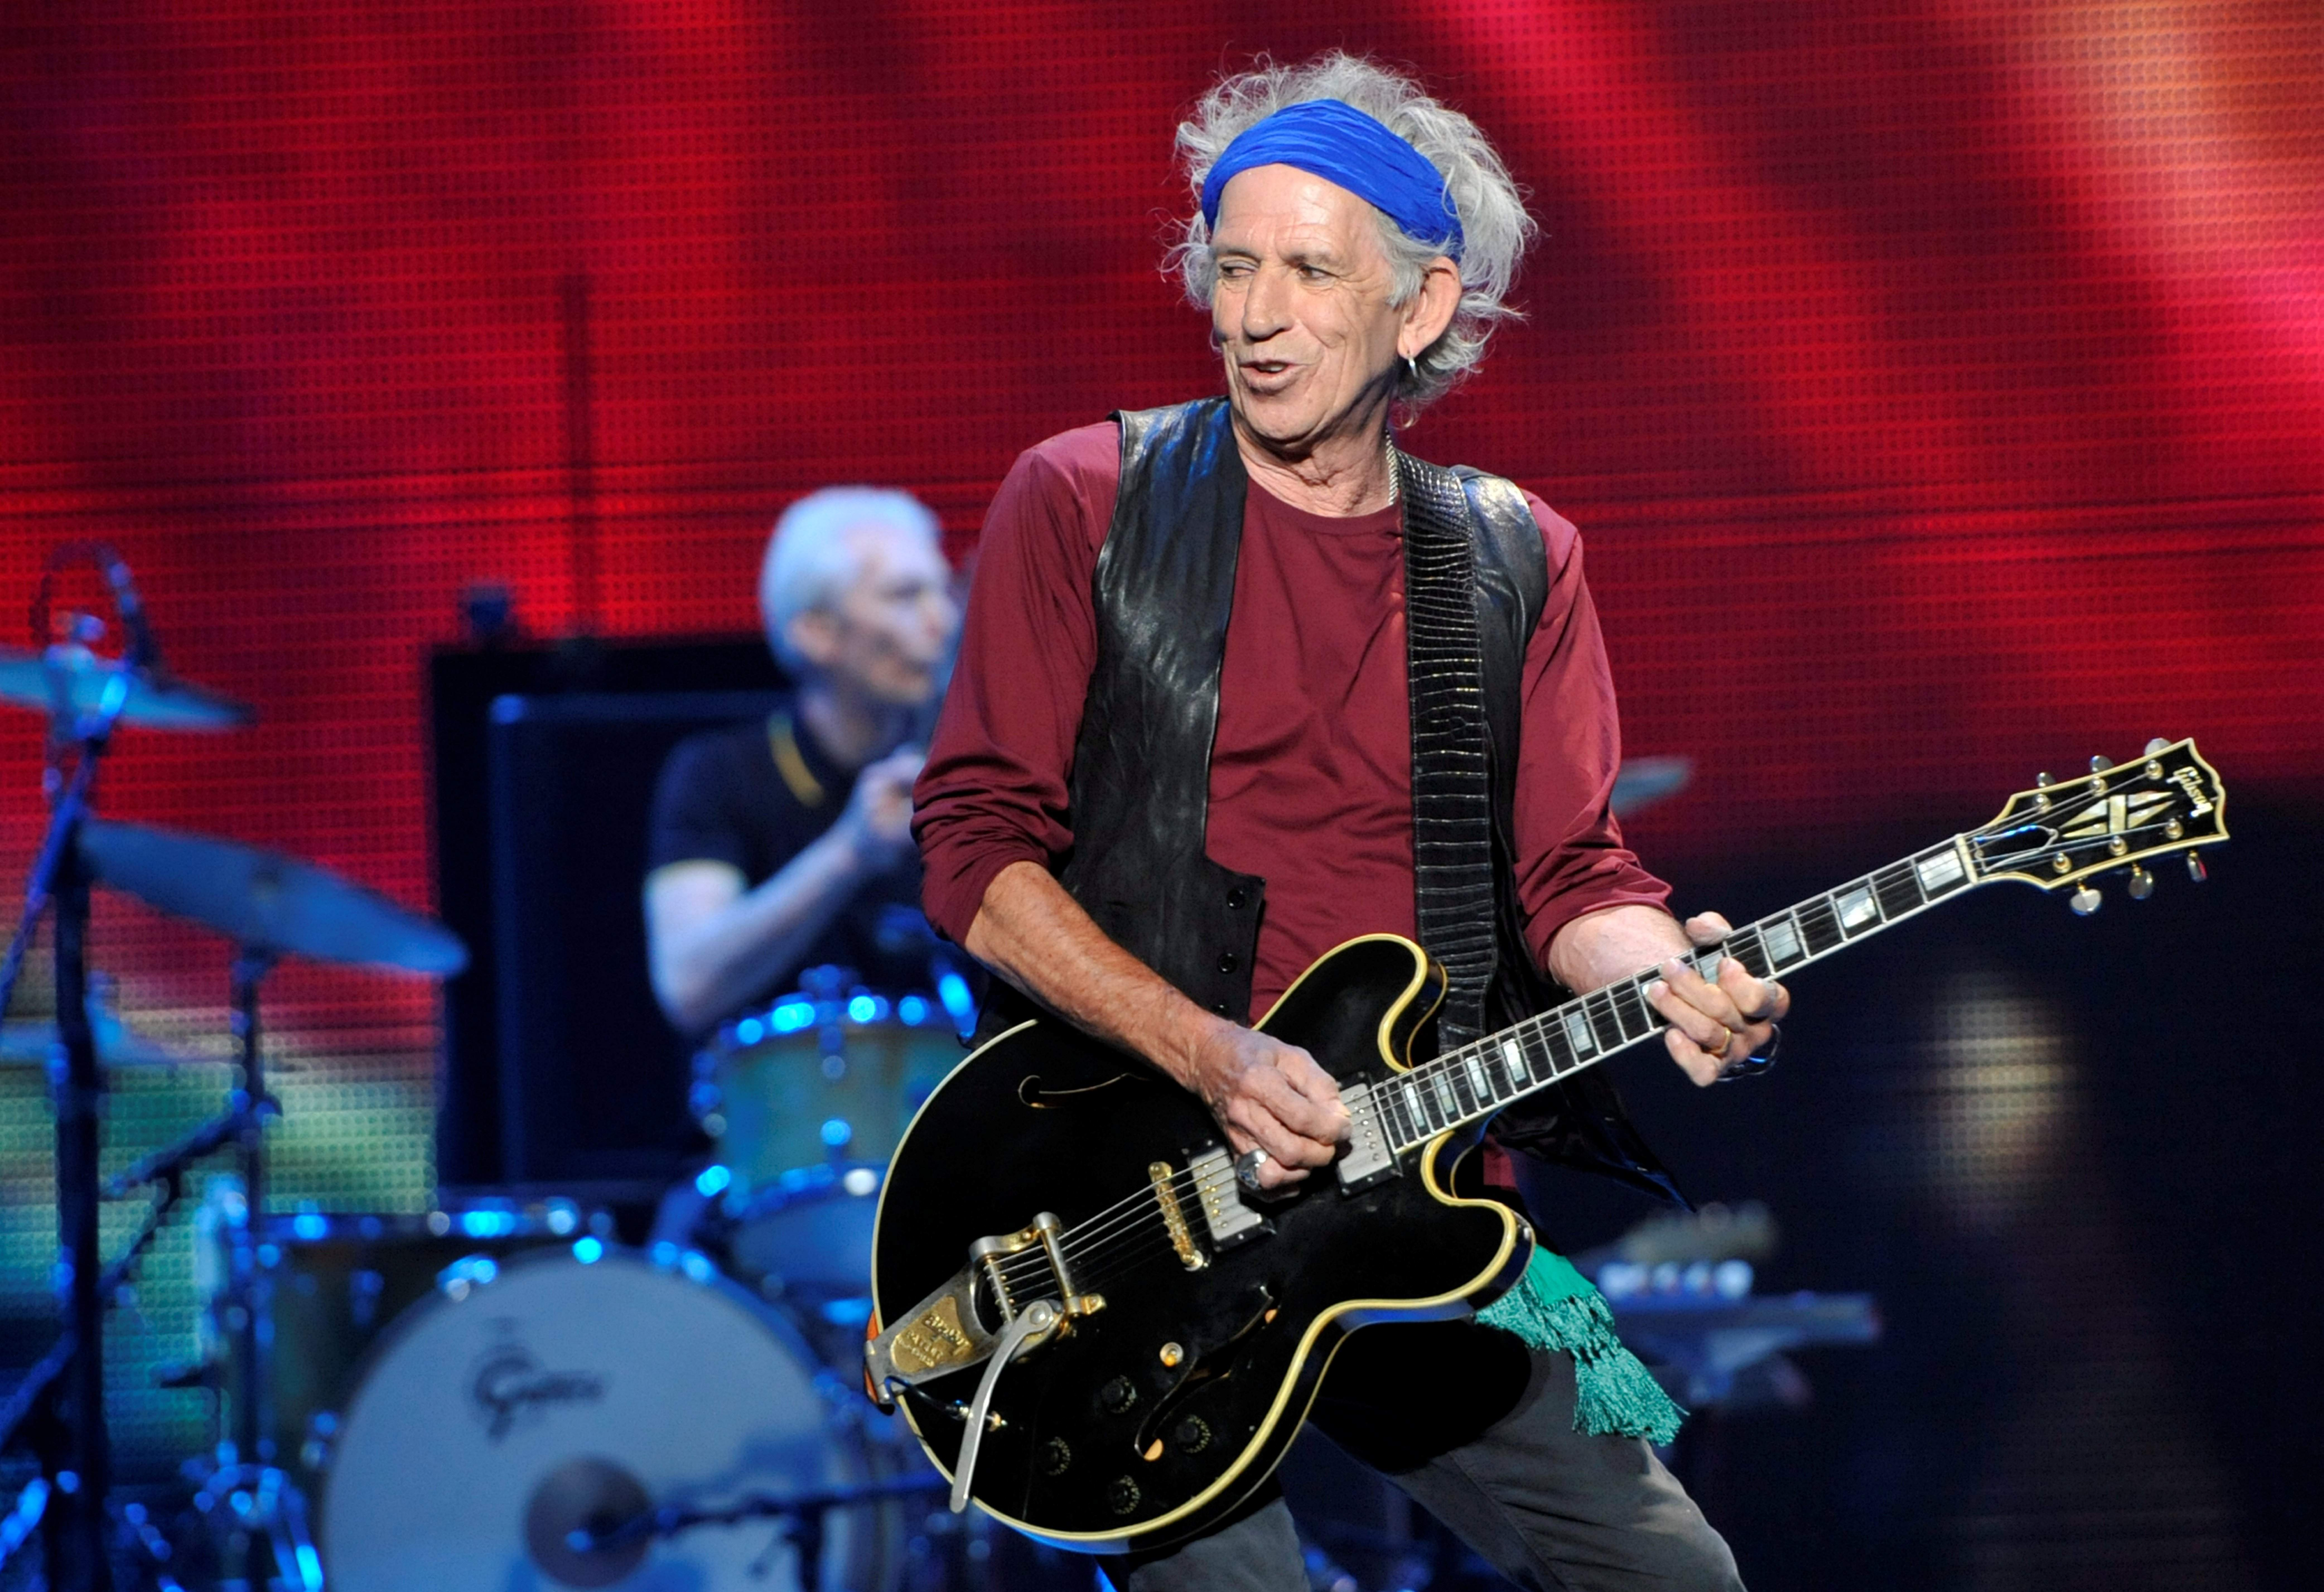 Keith Richards Childrens Book Gus Me The Story Of My Granddad And First Guitar Releases Today